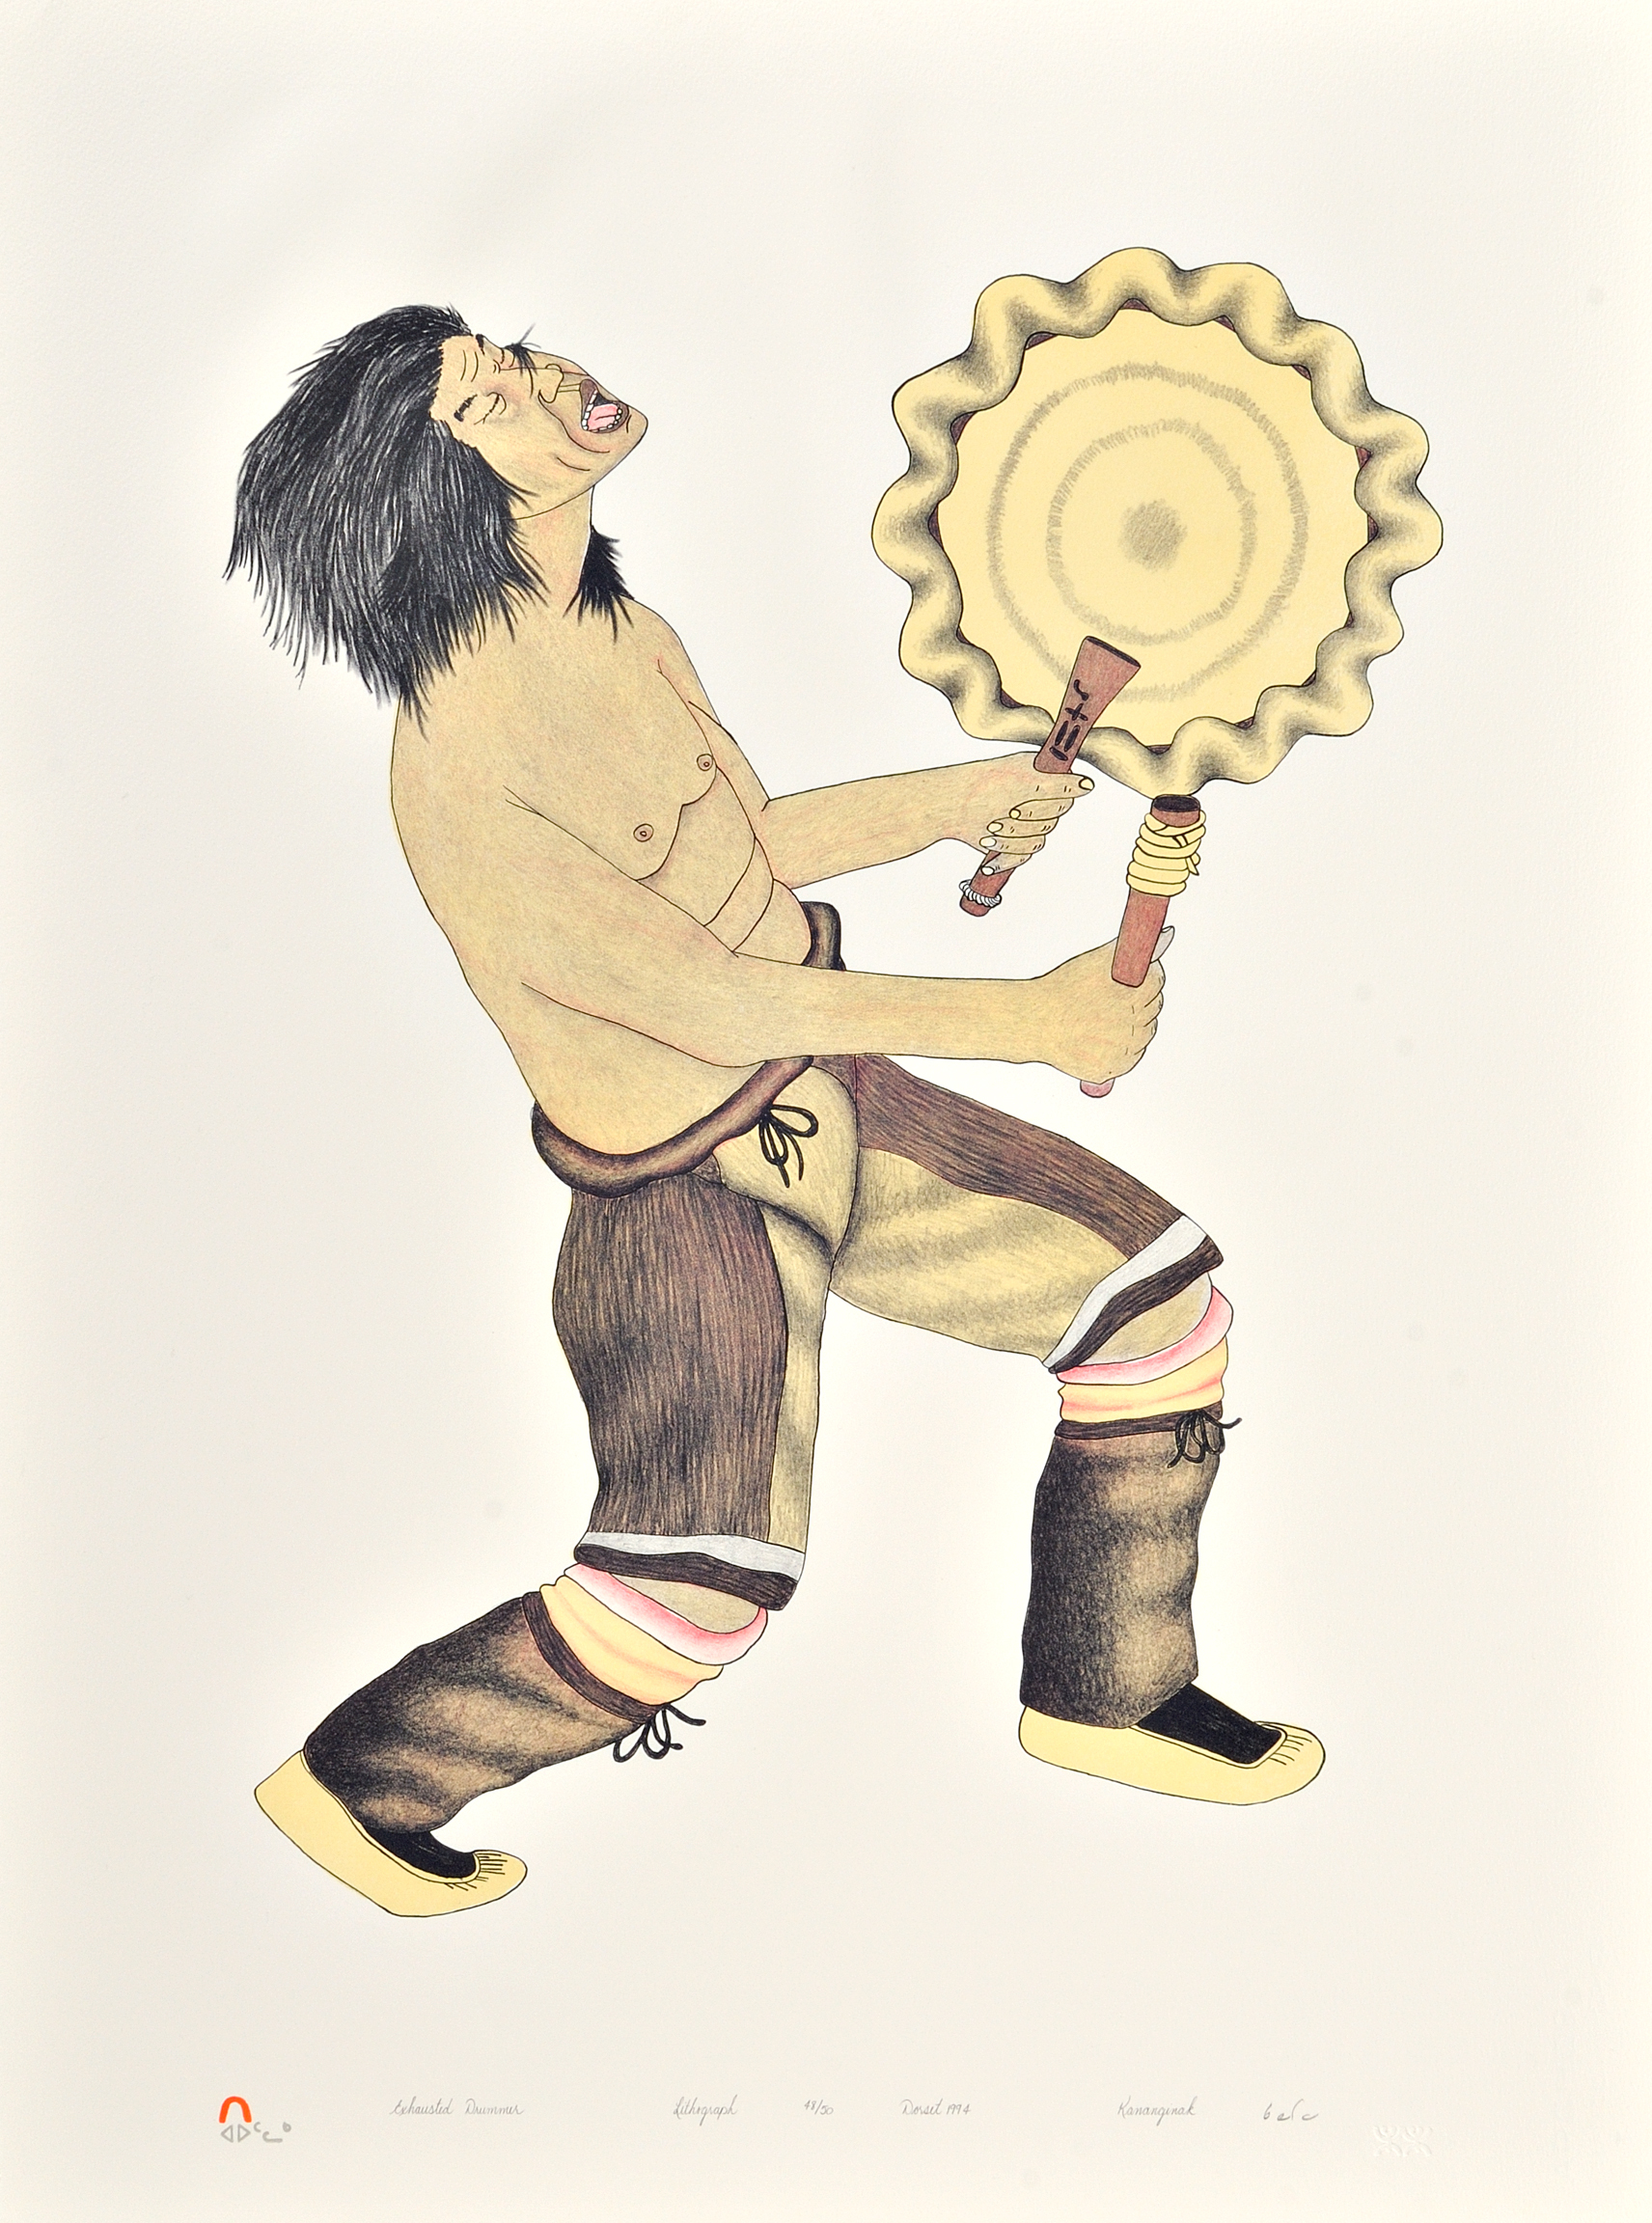 Kananginak Pootoogook  EXHAUSTED DRUMMER Lithograph   1994 76.2 x 56.5 cm $400.00 CDN Released in the 1994 collection Dorset ID#: 94-07